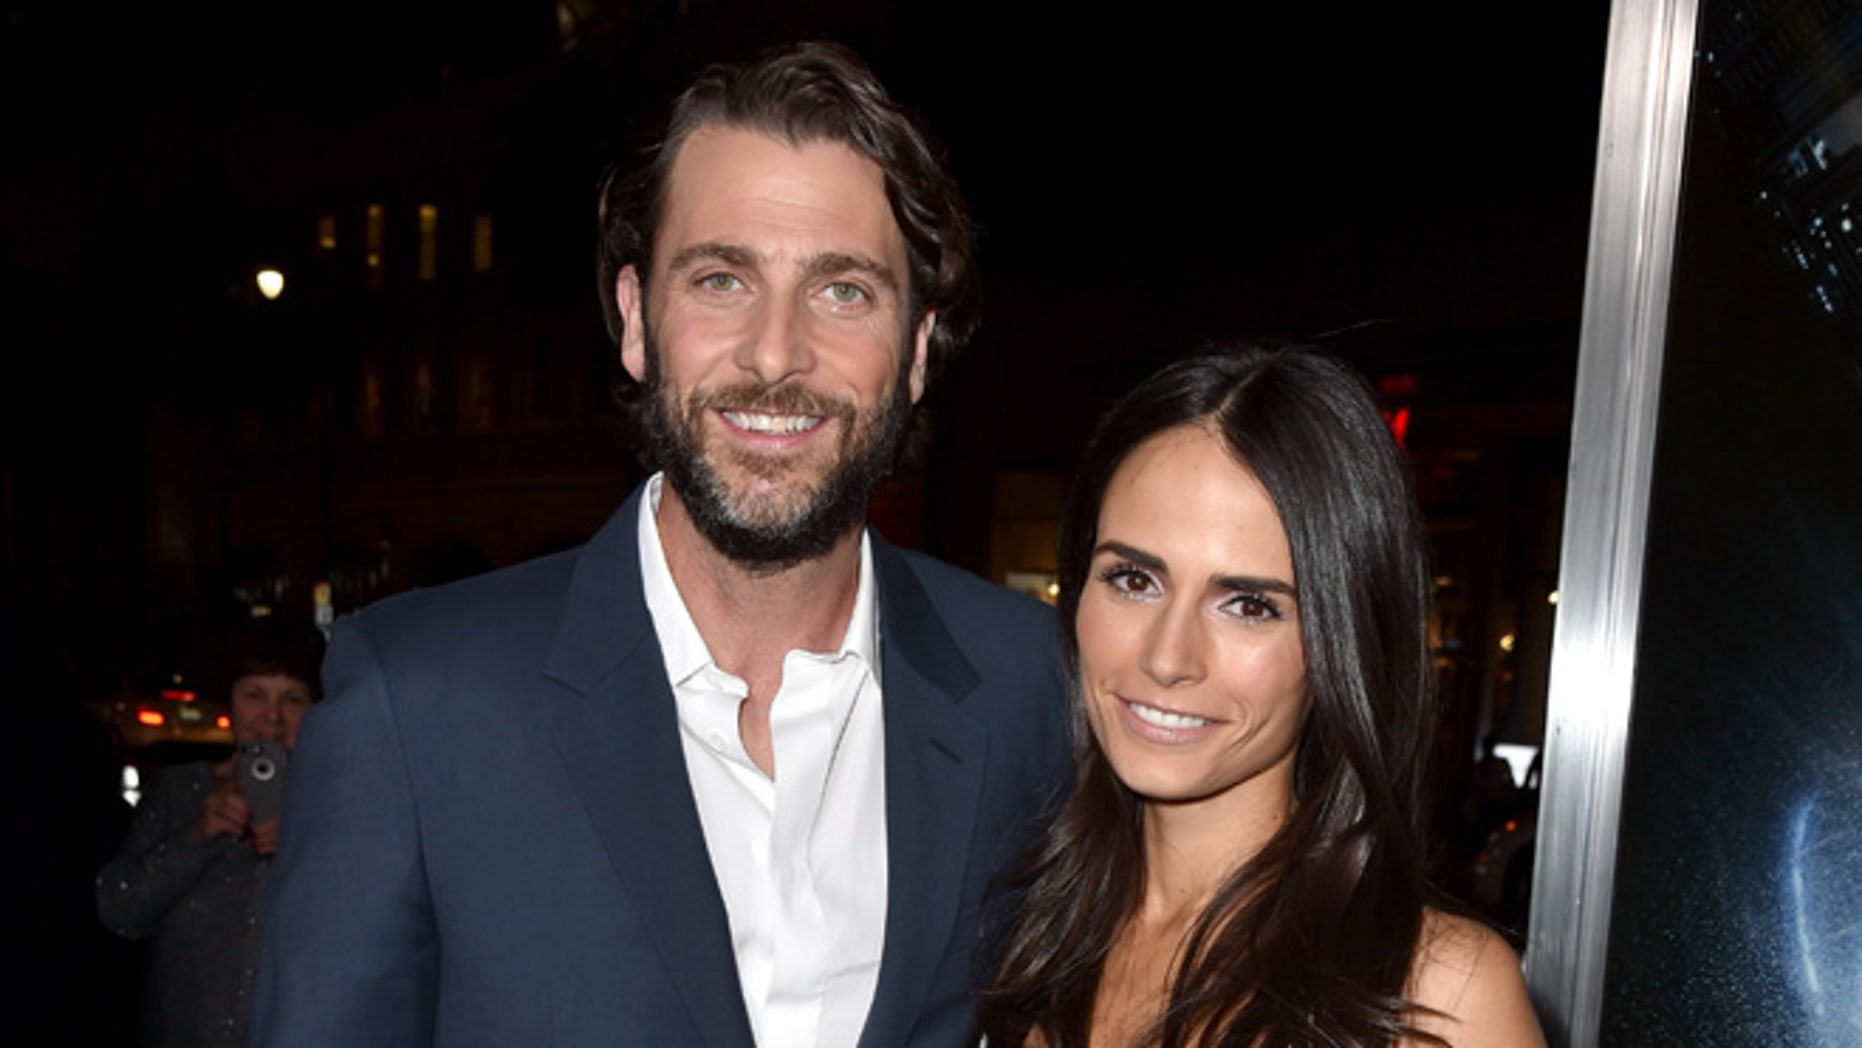 """HOLLYWOOD, CA - JANUARY 27:  Producer Andrew Form (L) and actress Jordana Brewster attend the premiere of Paramount Pictures' """"Project Almanac"""" at TCL Chinese Theatre on January 27, 2015 in Hollywood, California.  (Photo by Kevin Winter/Getty Images for Paramount Pictures International)"""